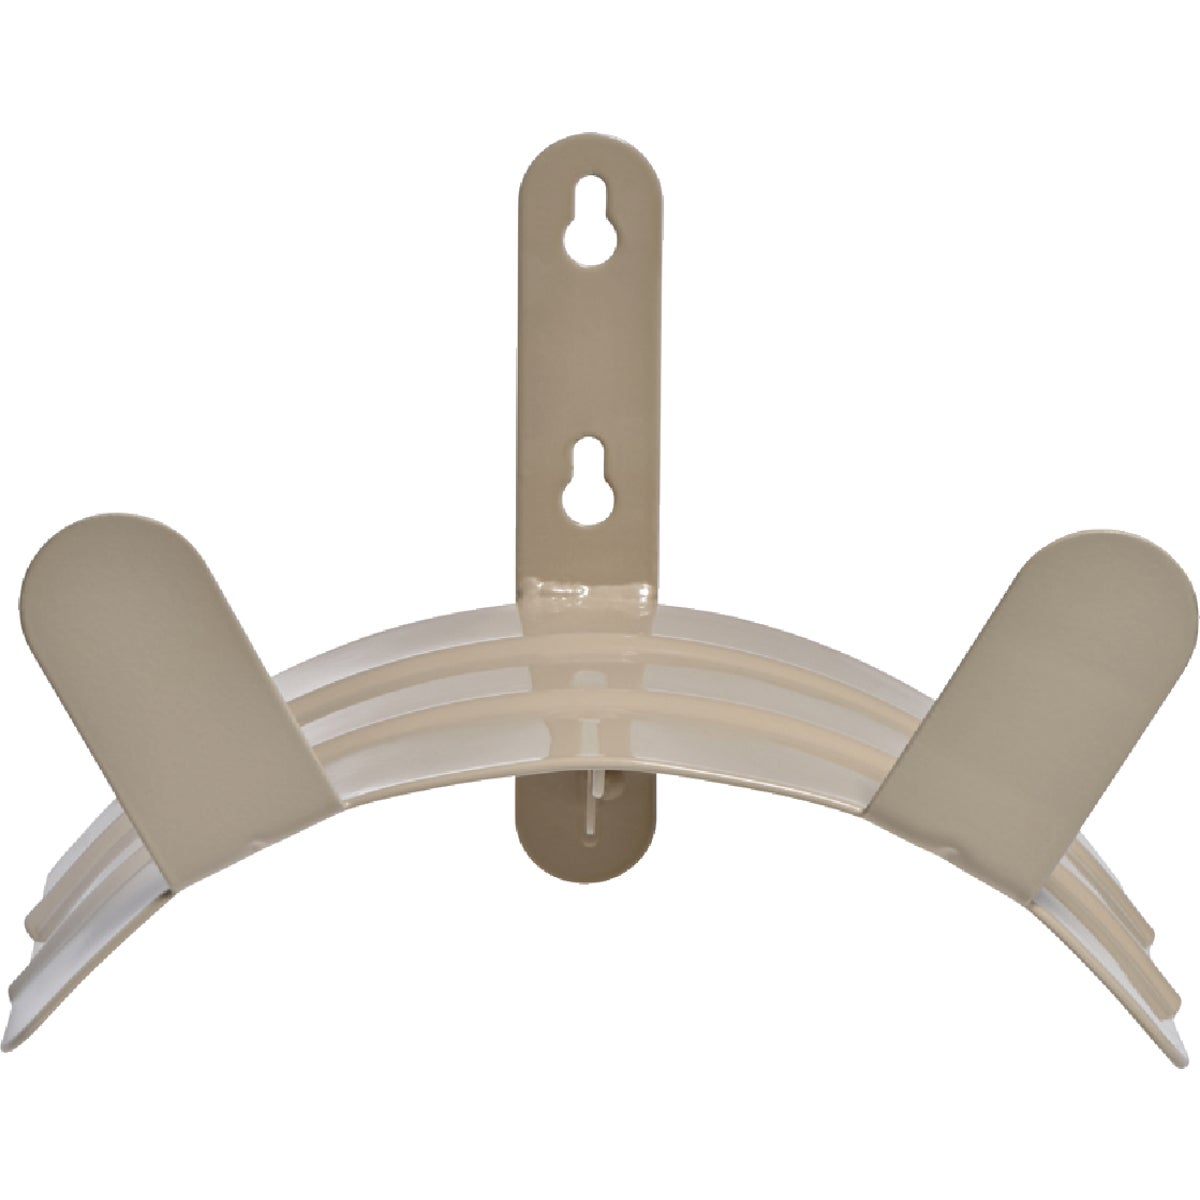 STEEL WALL HOSE HANGER - HCWM-1 by Lewis Lifetime Tools